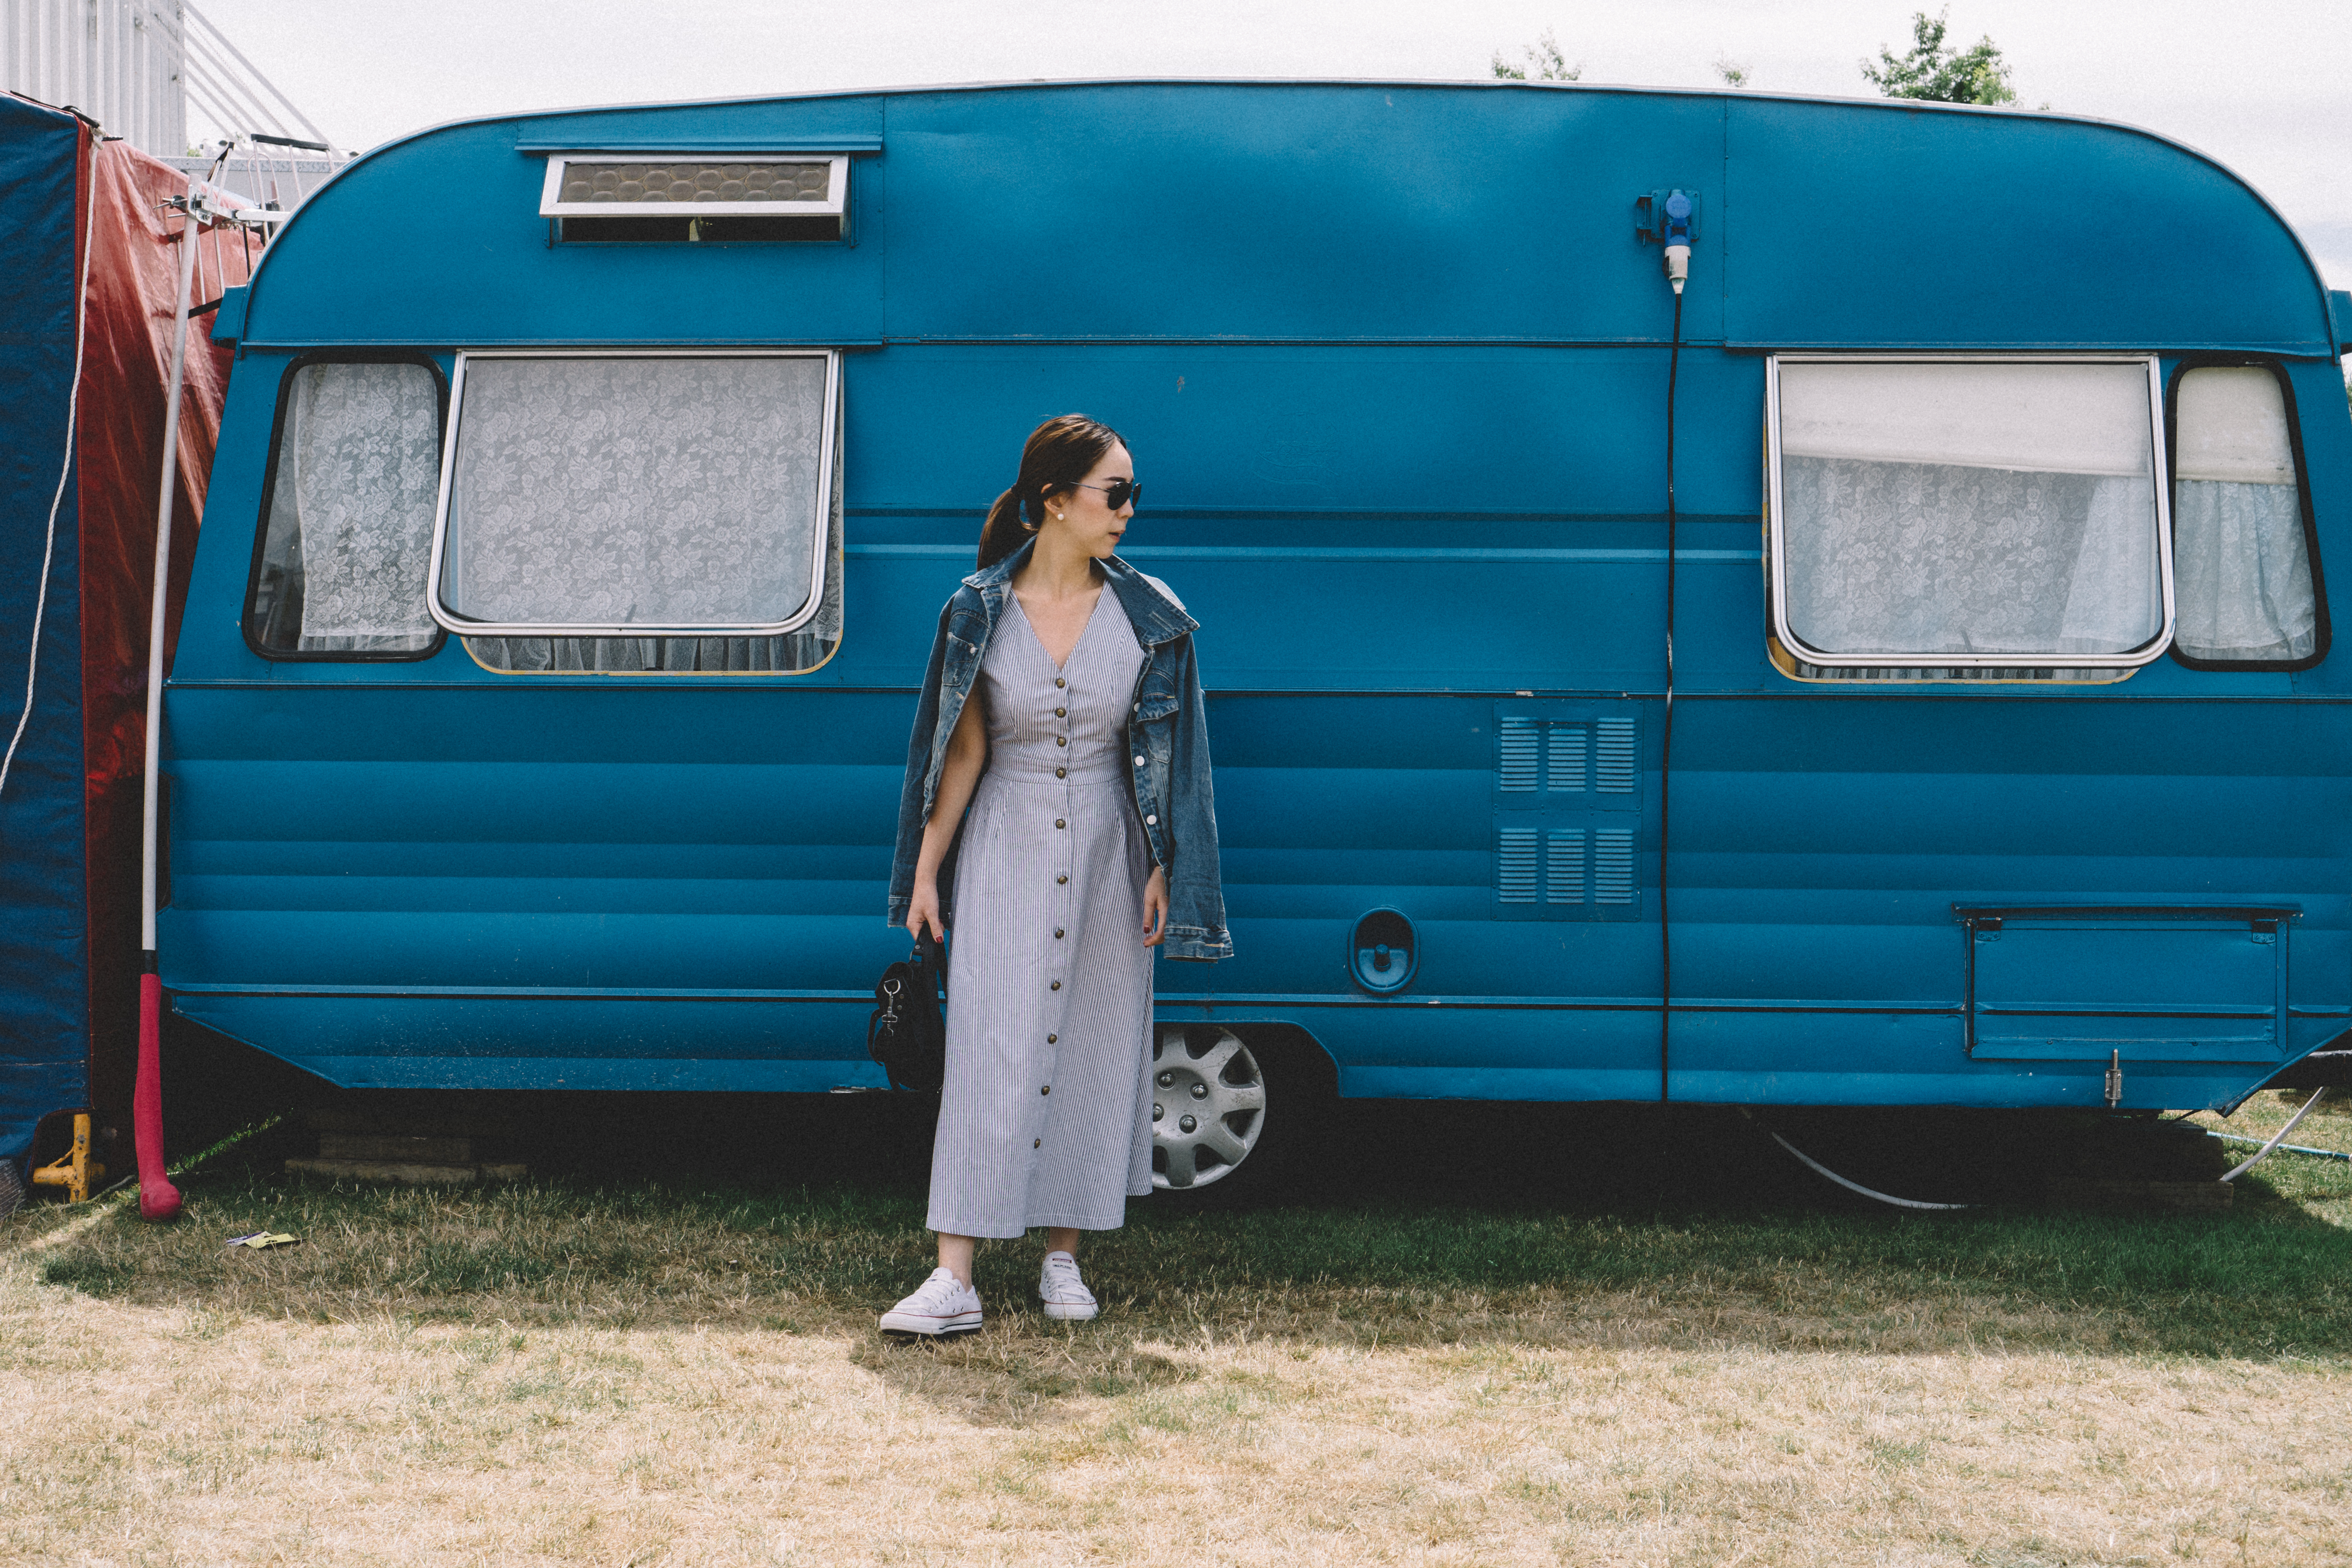 Don't Camp at a Bad RV Park, Follow These 5 Rules